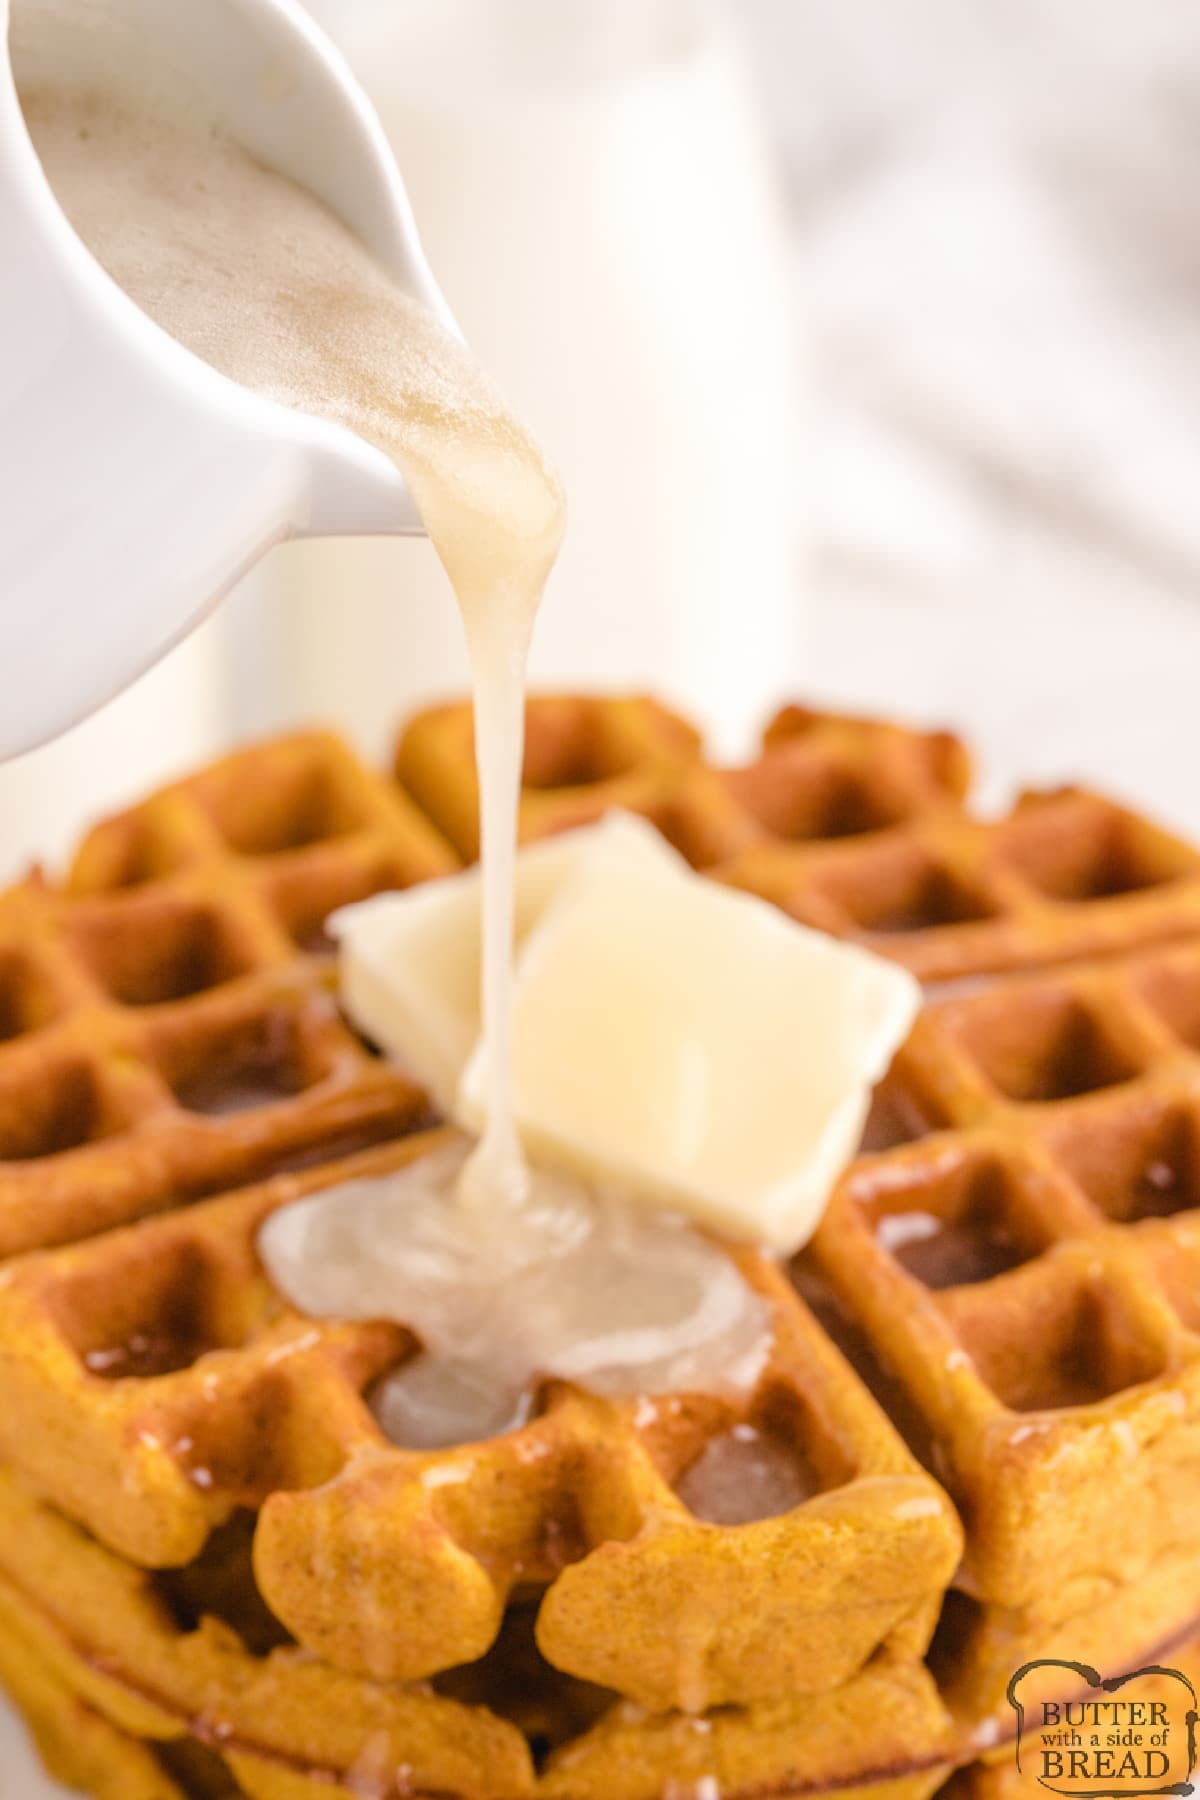 Buttermilk syrup being poured over pumpkin waffles